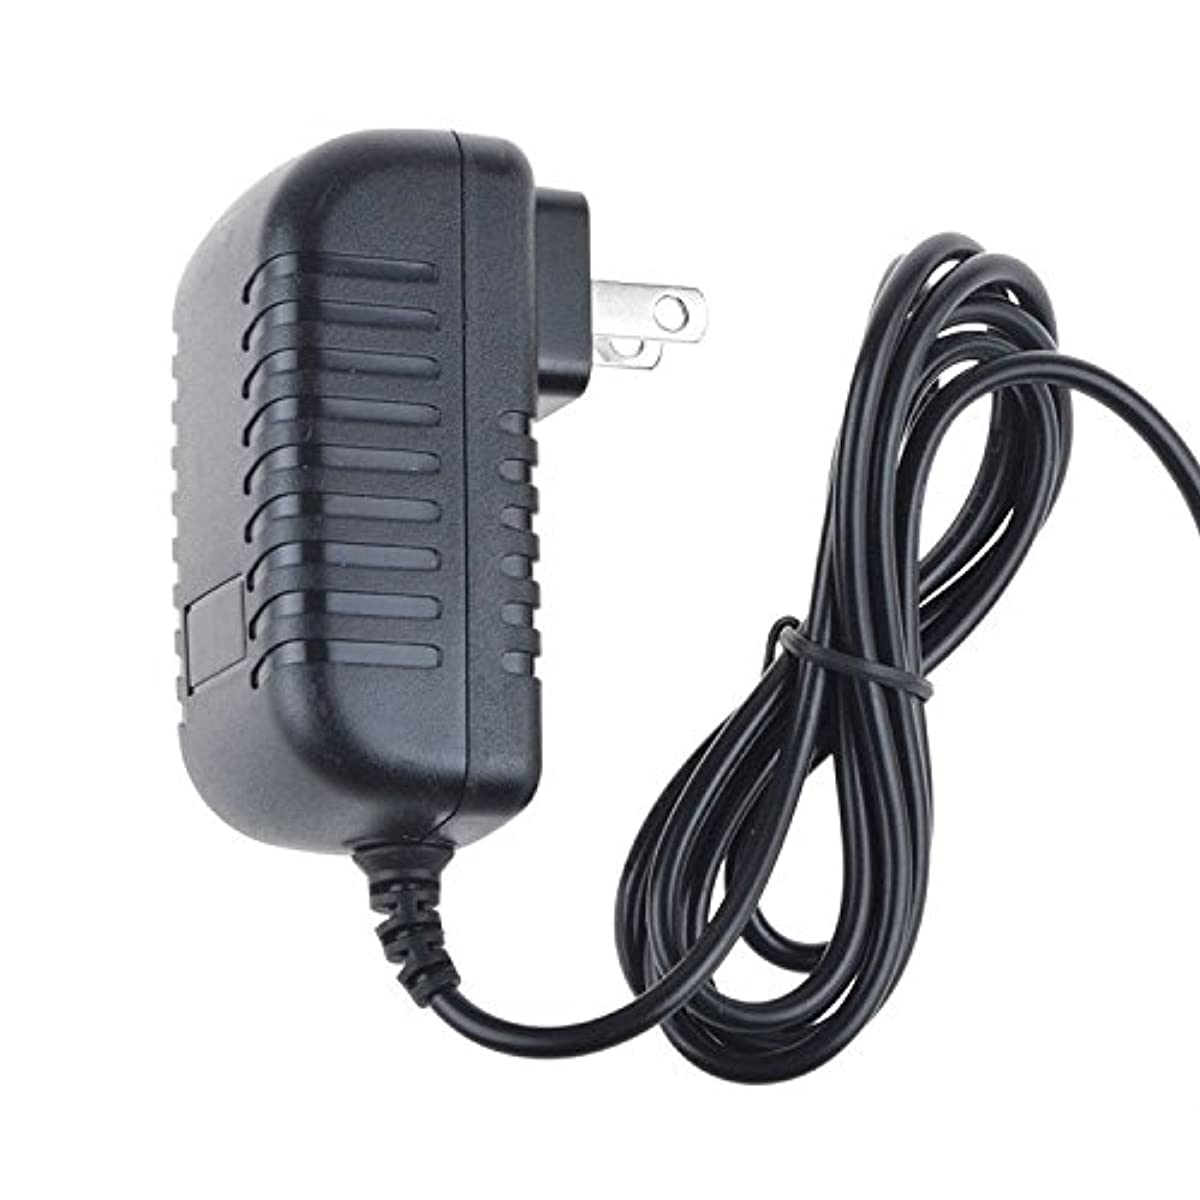 Digipartspower AC Adapter Charger for Nady DKW-1 GT Wireless Guitar System DC Power Supply Cord